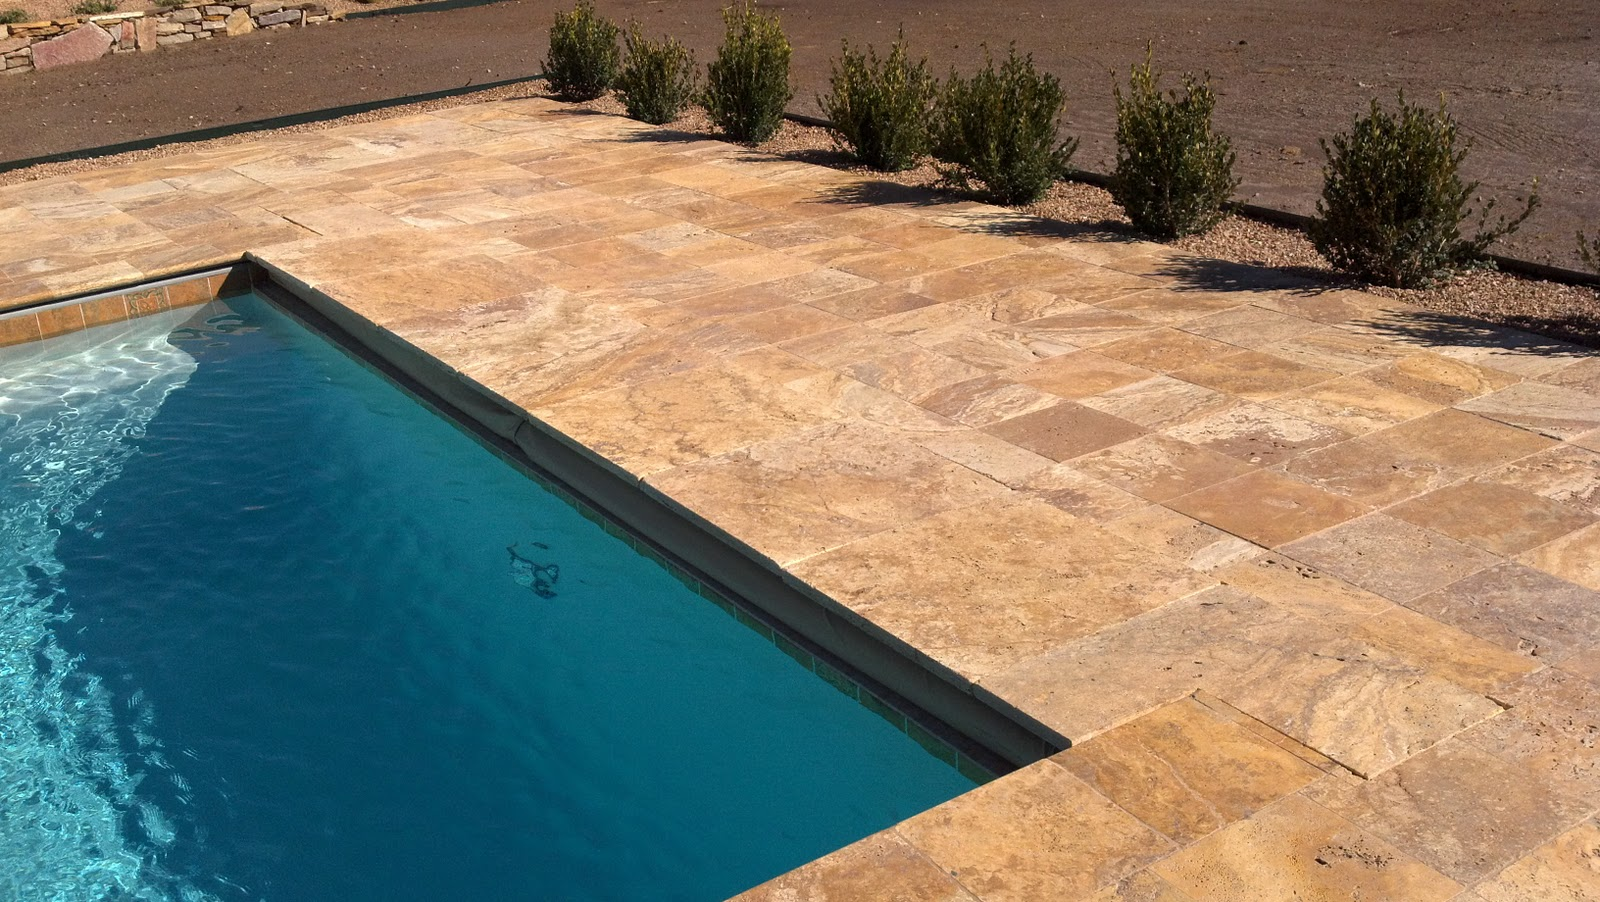 coverstar automatic pool covers. For A Pool Cover Your New Pool, And There Are Options As Well When Covering Existing Pool. Many To Choose From\u2026check Them Coverstar Automatic Covers O